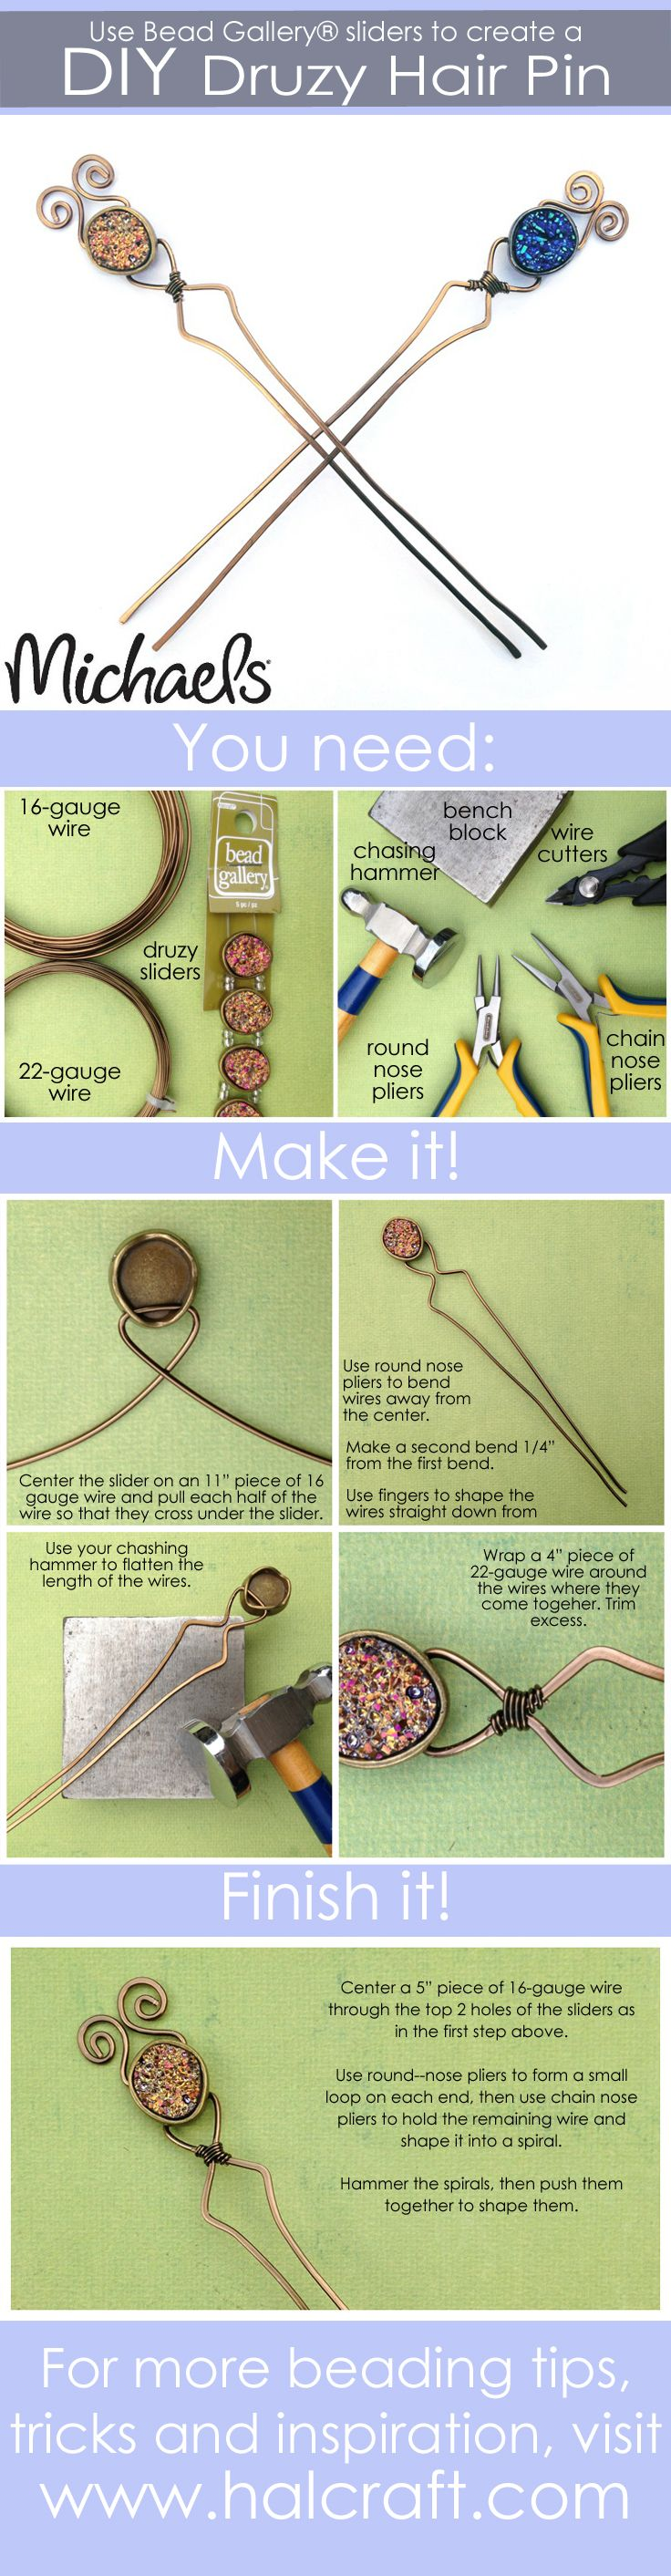 DIY druzy hair pins - Click for instructions to make your own! #madewithmichaels #BeadGallery